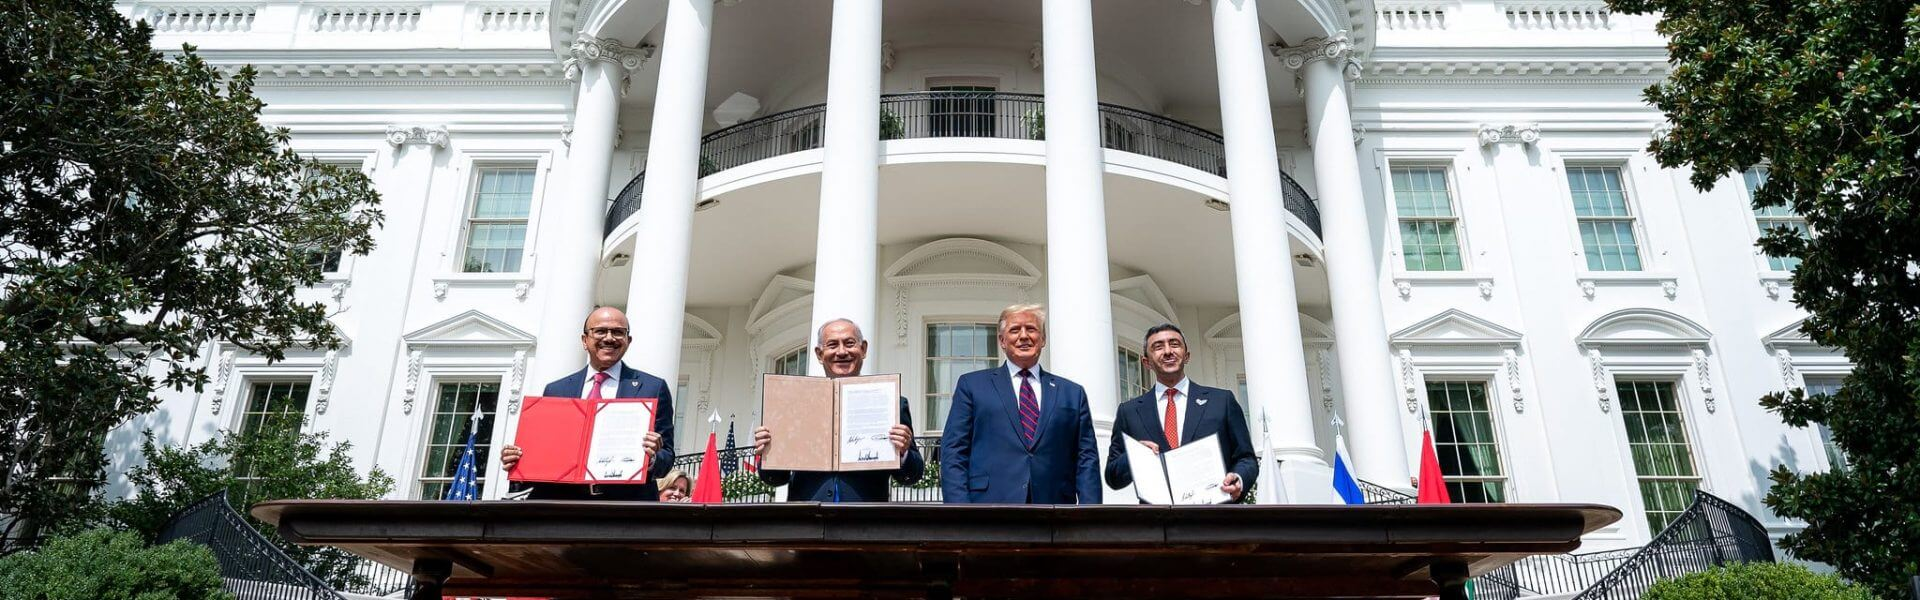 President Donald J. Trump, Minister of Foreign Affairs of Bahrain Dr. Abdullatif bin Rashid Al-Zayani, Israeli Prime Minister Benjamin Netanyahu and Minister of Foreign Affairs for the United Arab Emirates Abdullah bin Zayed Al Nahyanisigns sign the Abraham Accords Tuesday, Sept. 15, 2020, on the South Lawn of the White House. (Official White House Photo by Tia Dufour)